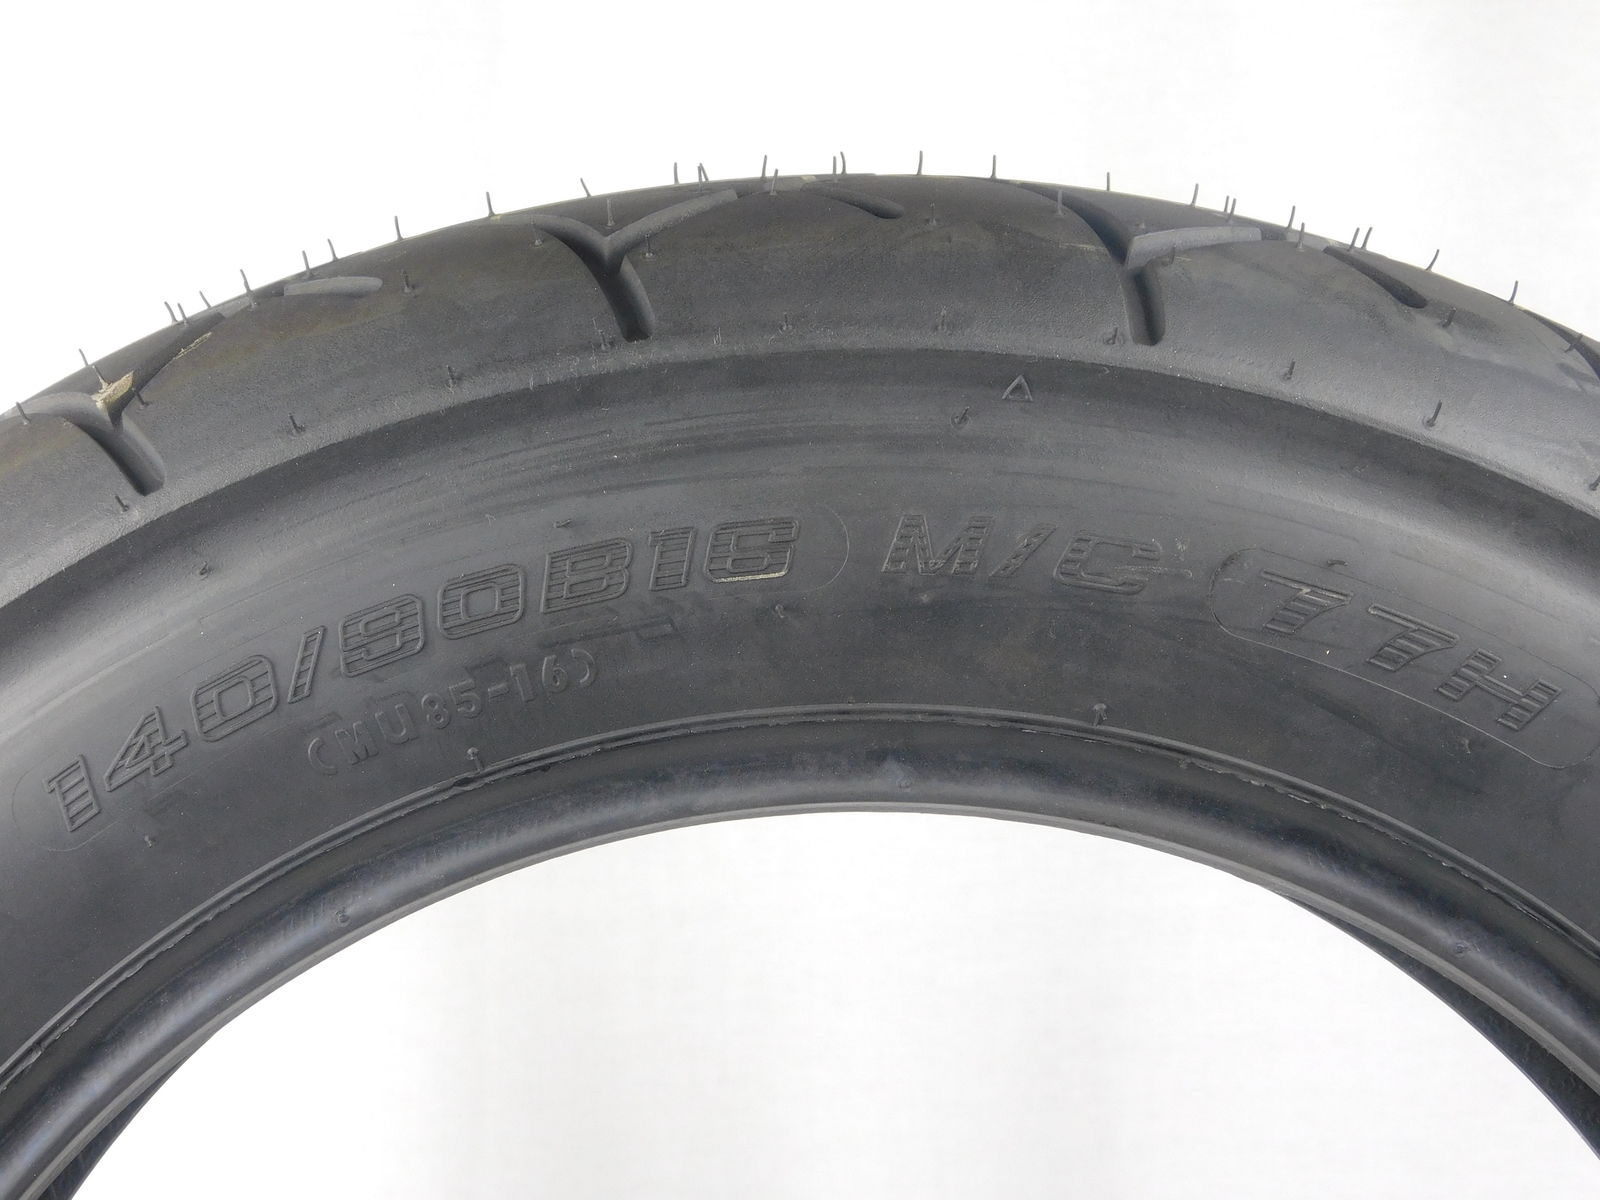 Full-Bore-80-90-21-Front-140-90-16-Rear-Cruisers-Motorcycle-Tires-image-5